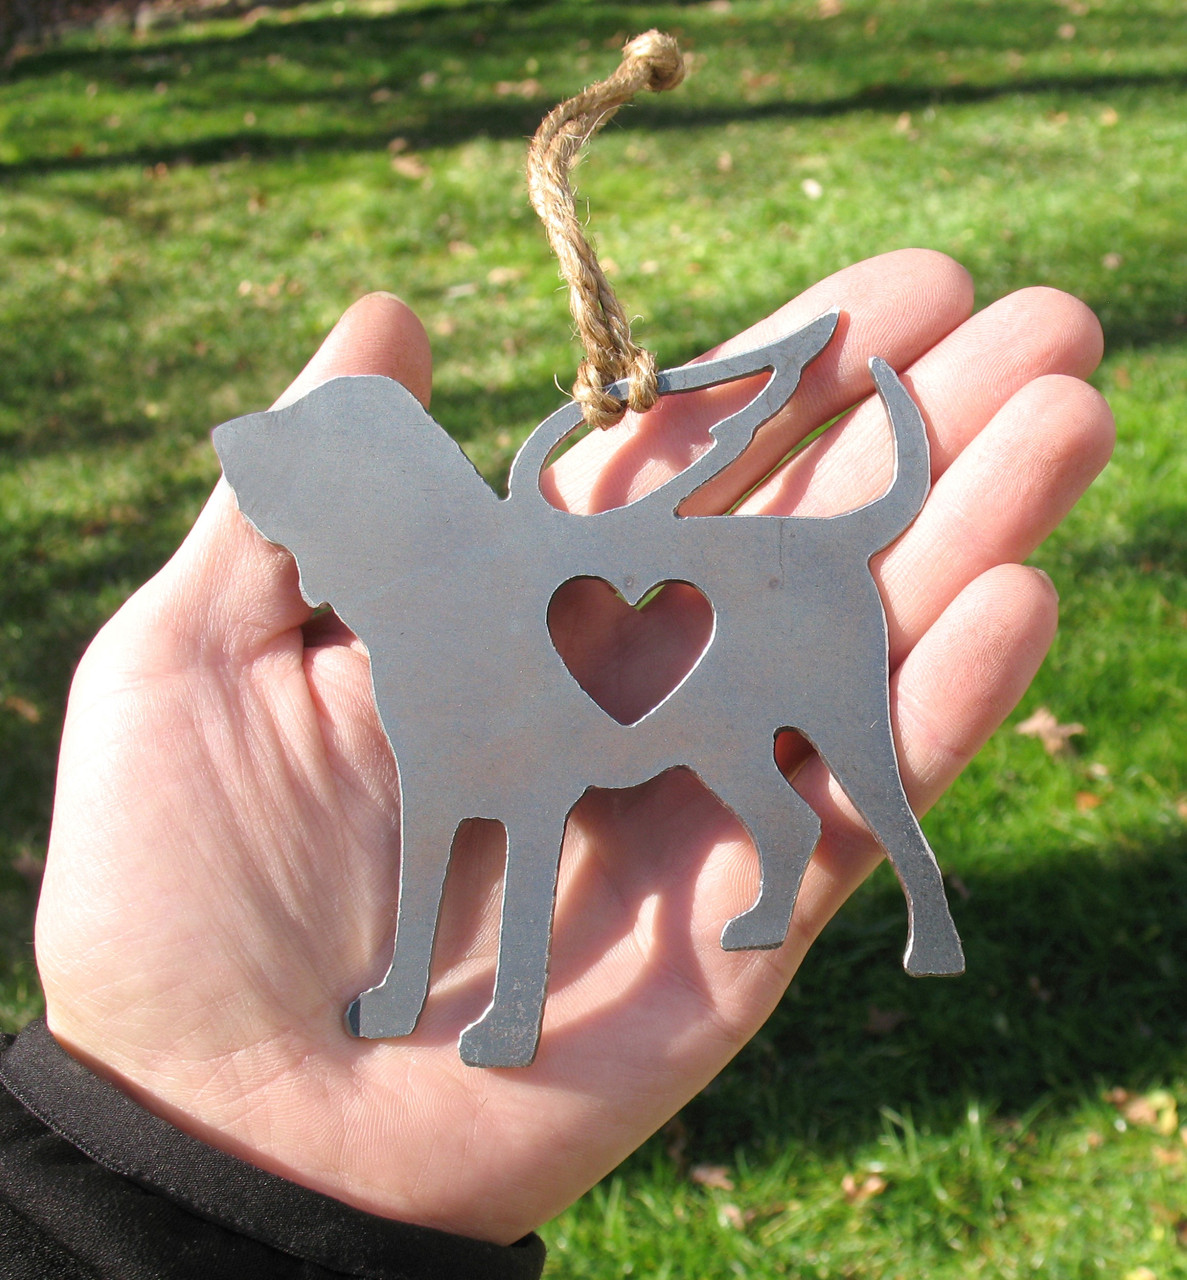 Bloodhound Dog Pet Loss Gift Ornament Angel - Pet Memorial - Dog Sympathy Remembrance Gift - Metal Dog Christmas Ornament